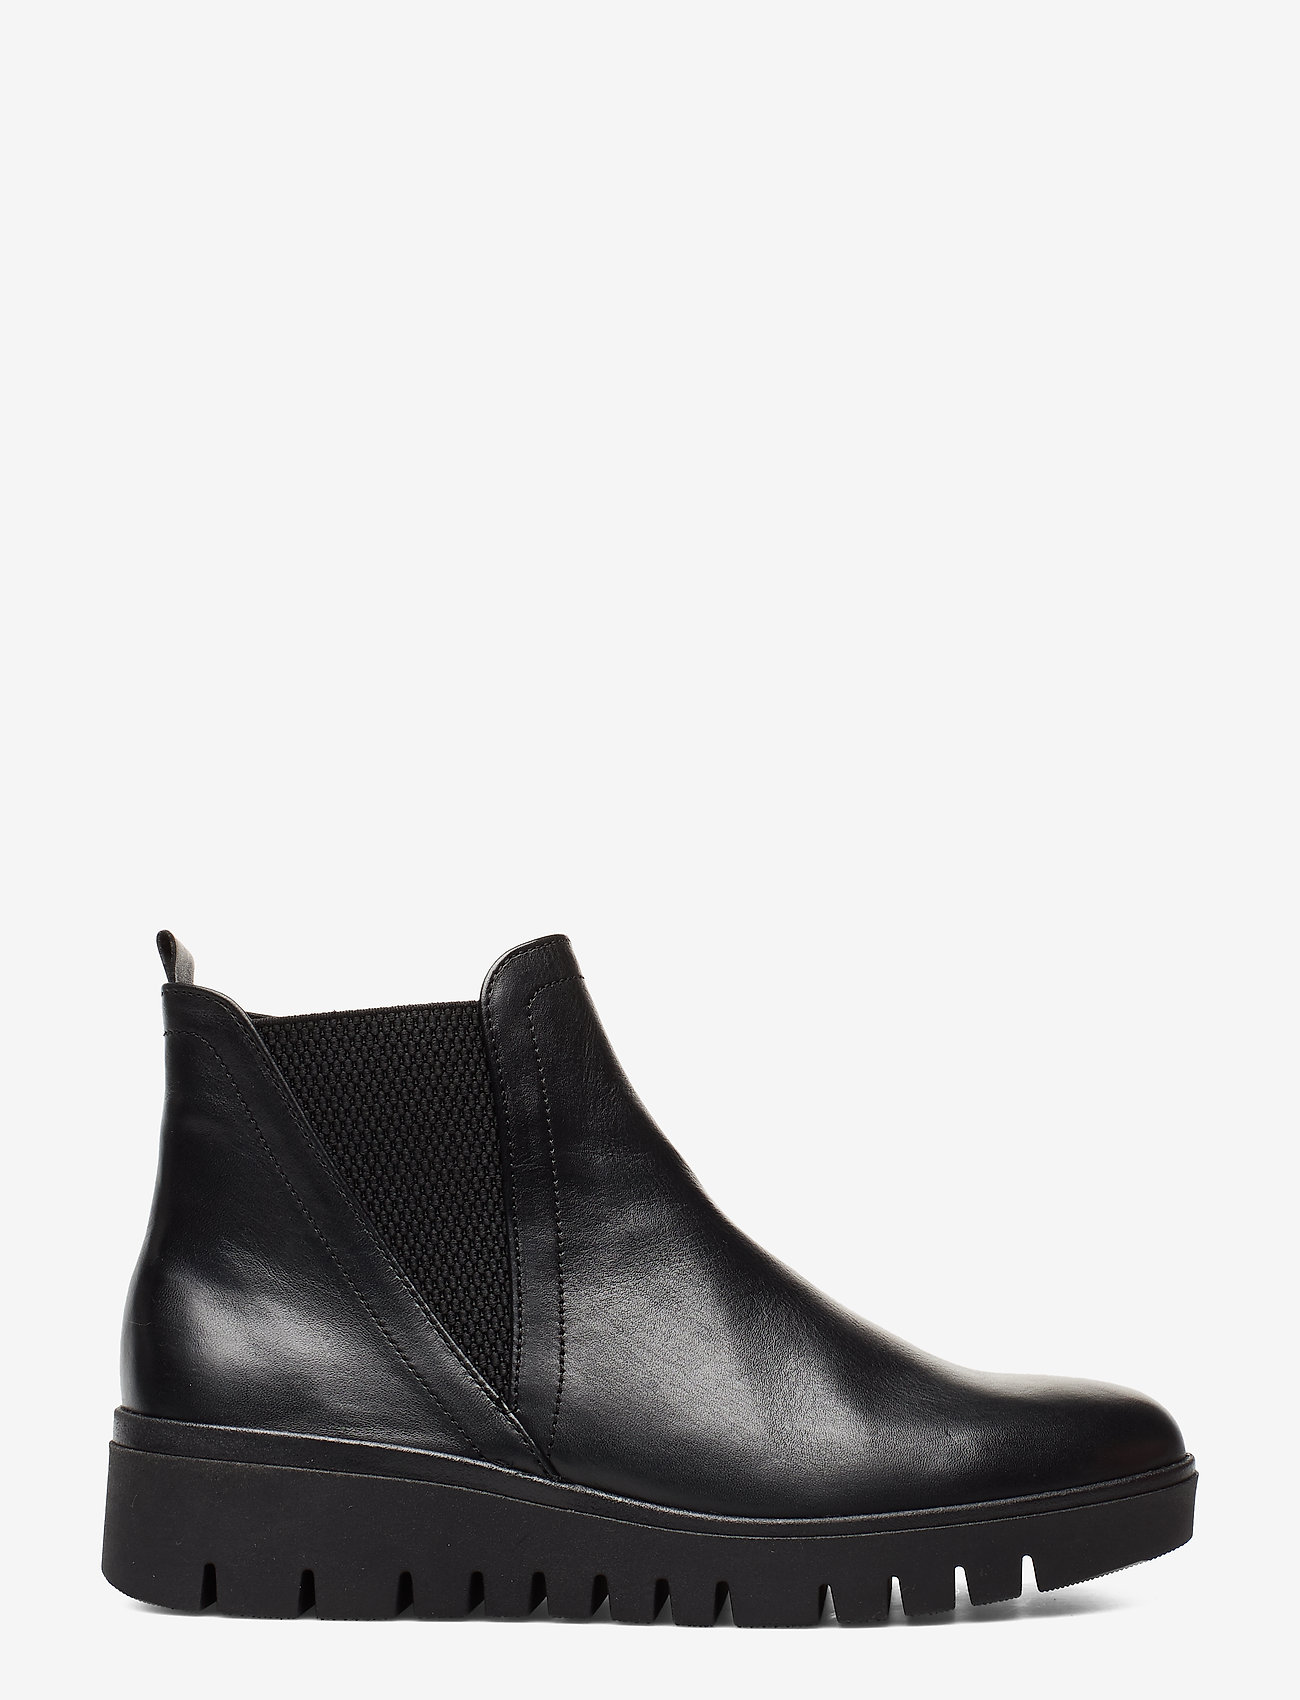 Ankle Boots (Black) - Gabor VKUUFb